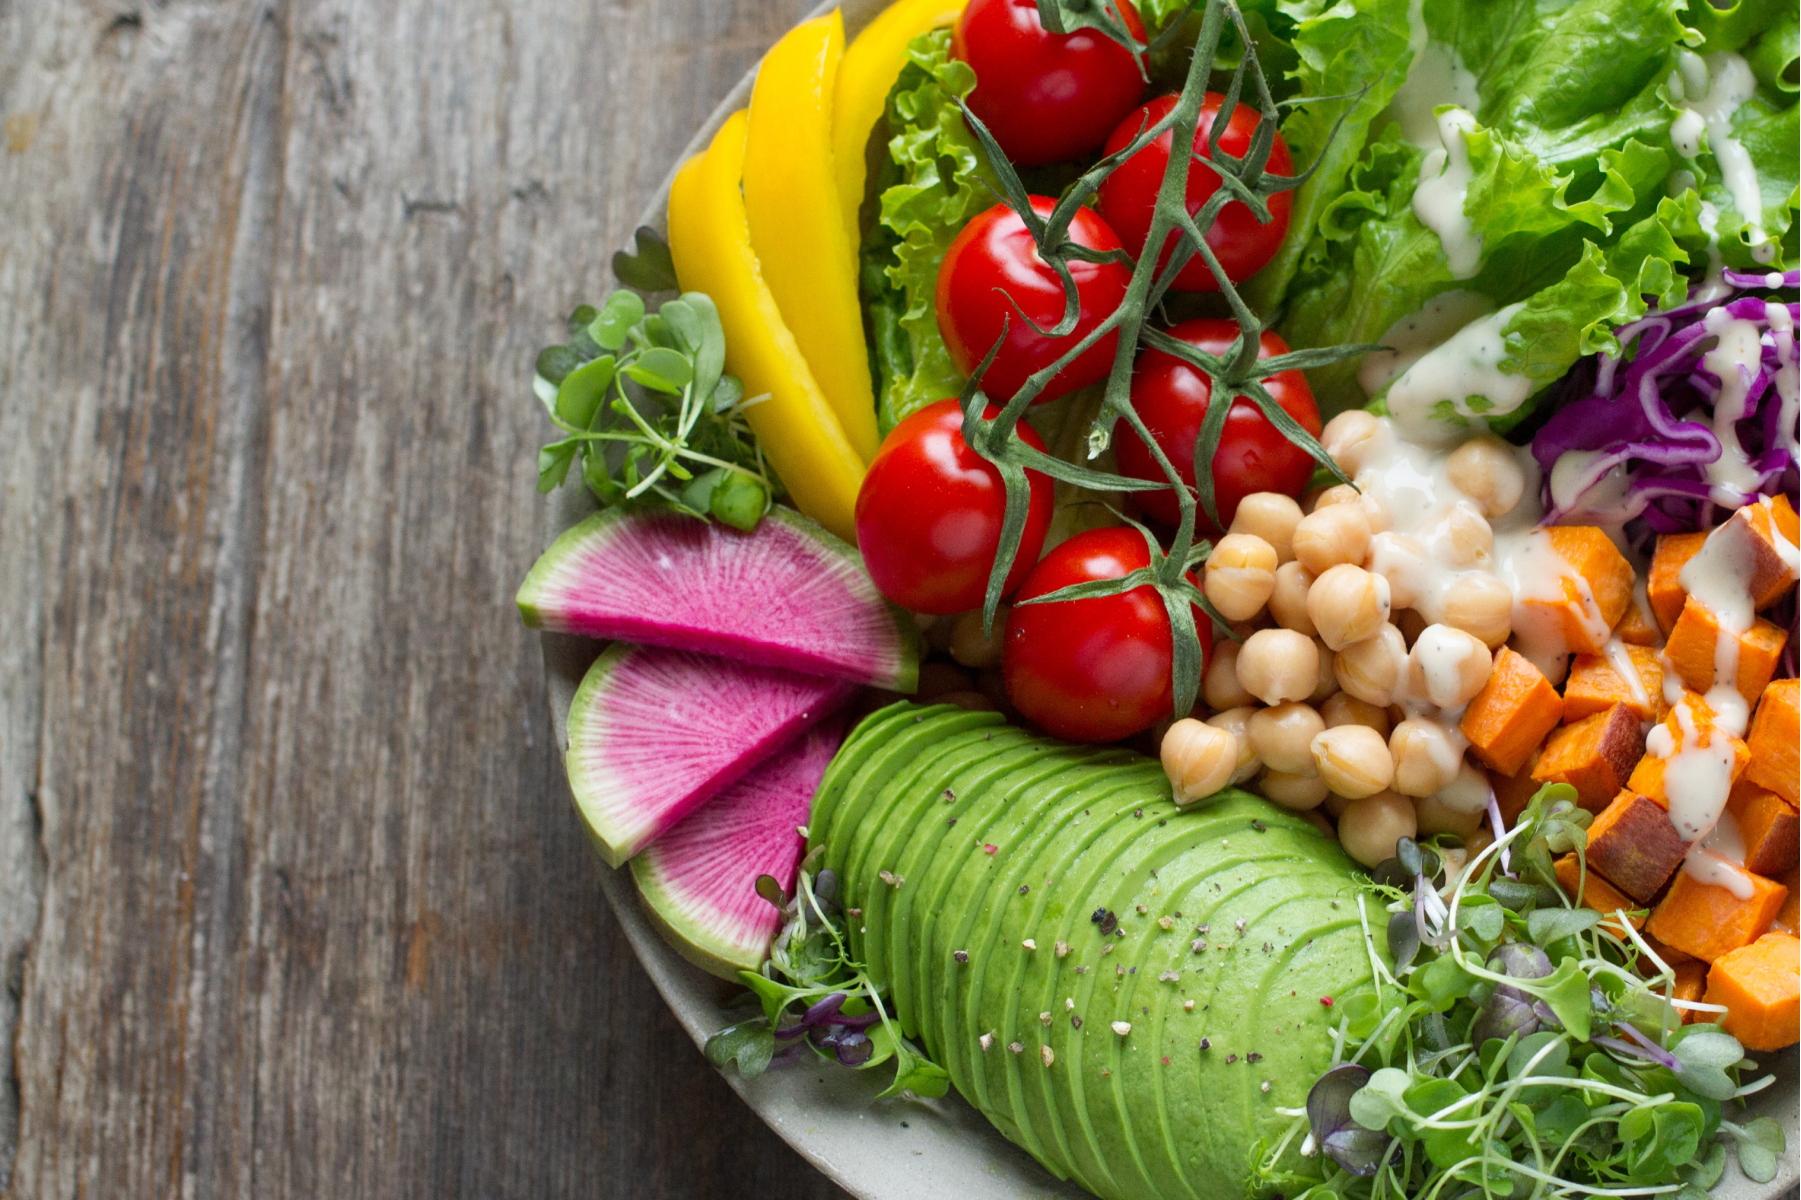 Does a vegan or vegetarian diet affect your bone health?